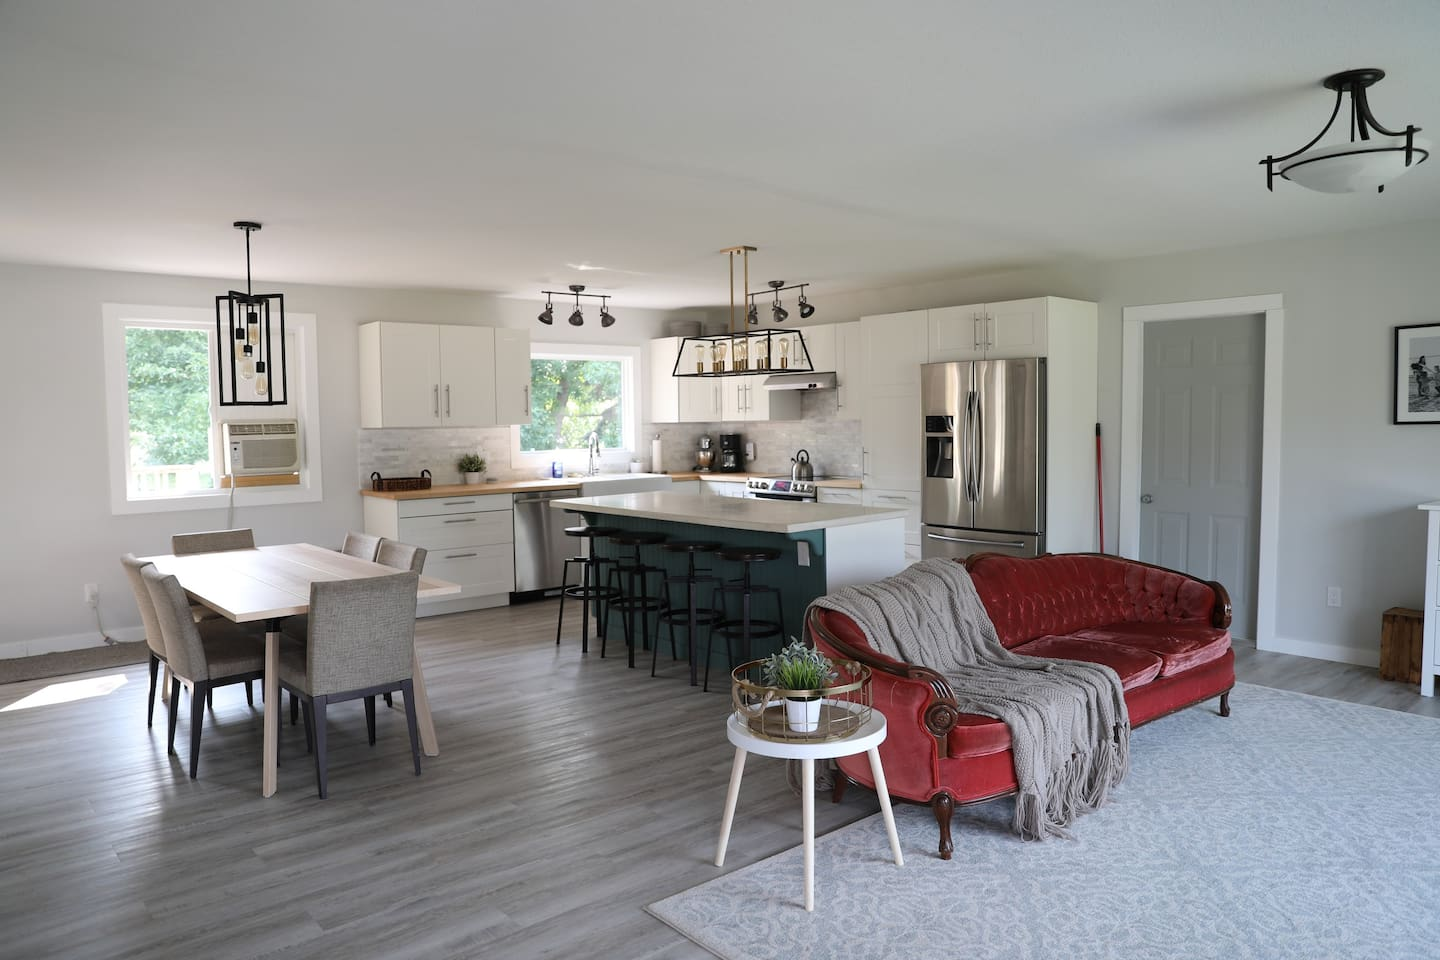 Cardston Home great for families